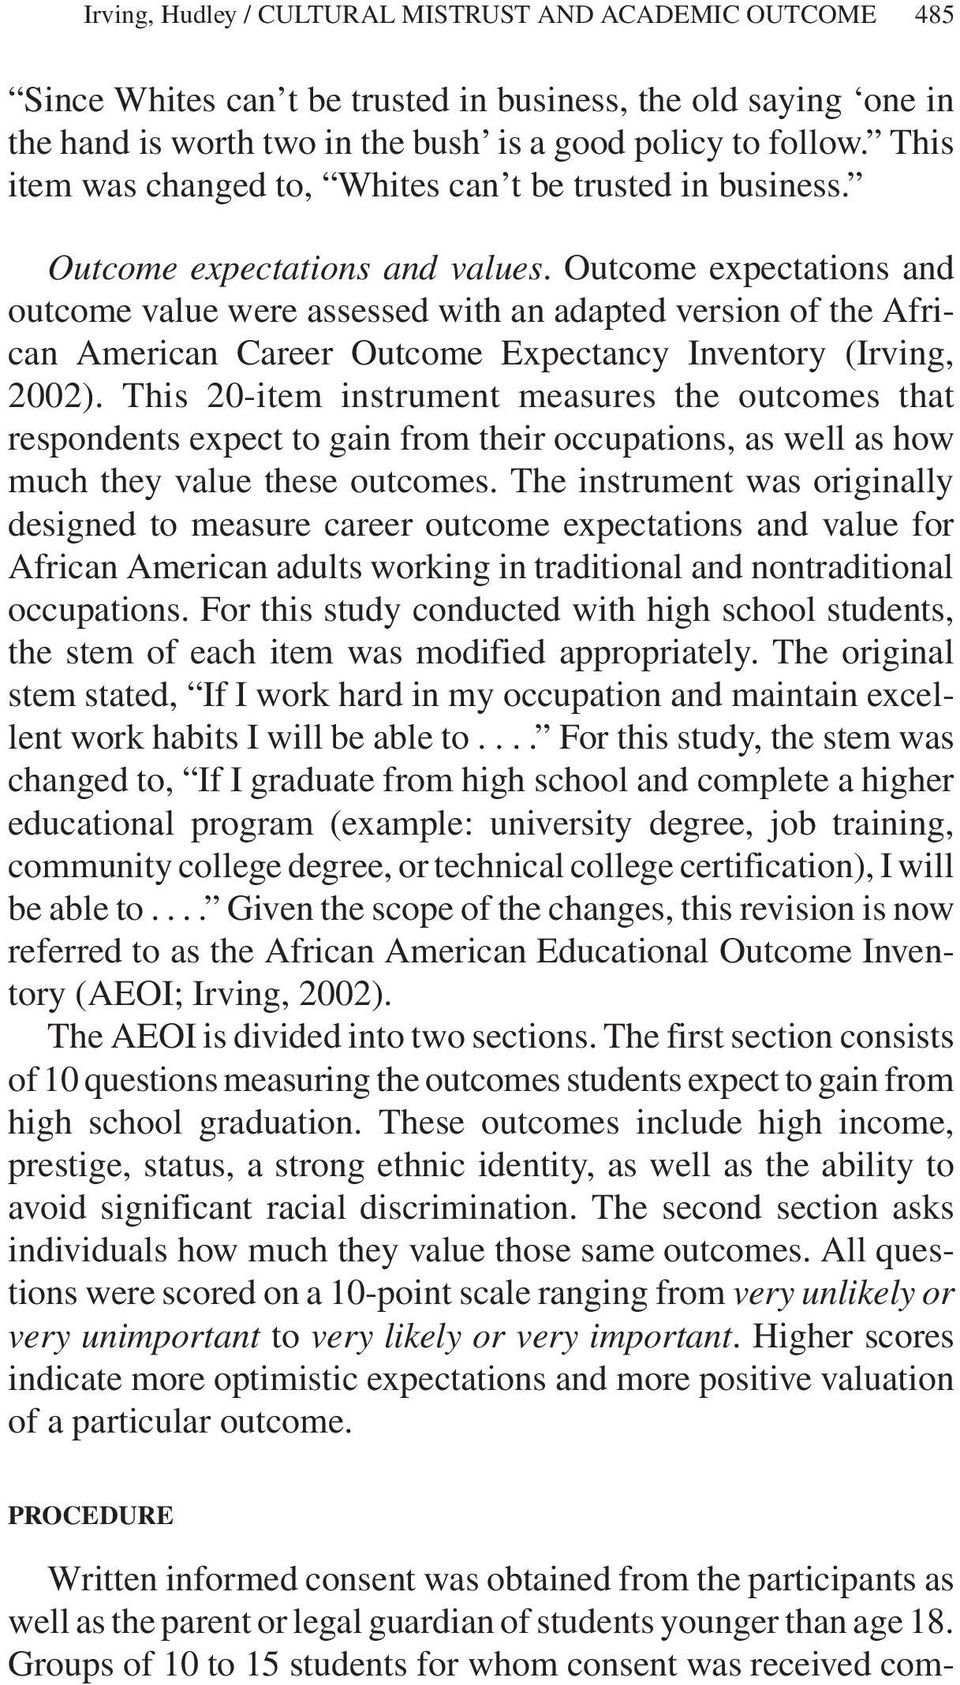 Outcome expectations and outcome value were assessed with an adapted version of the African American Career Outcome Expectancy Inventory (Irving, 2002).